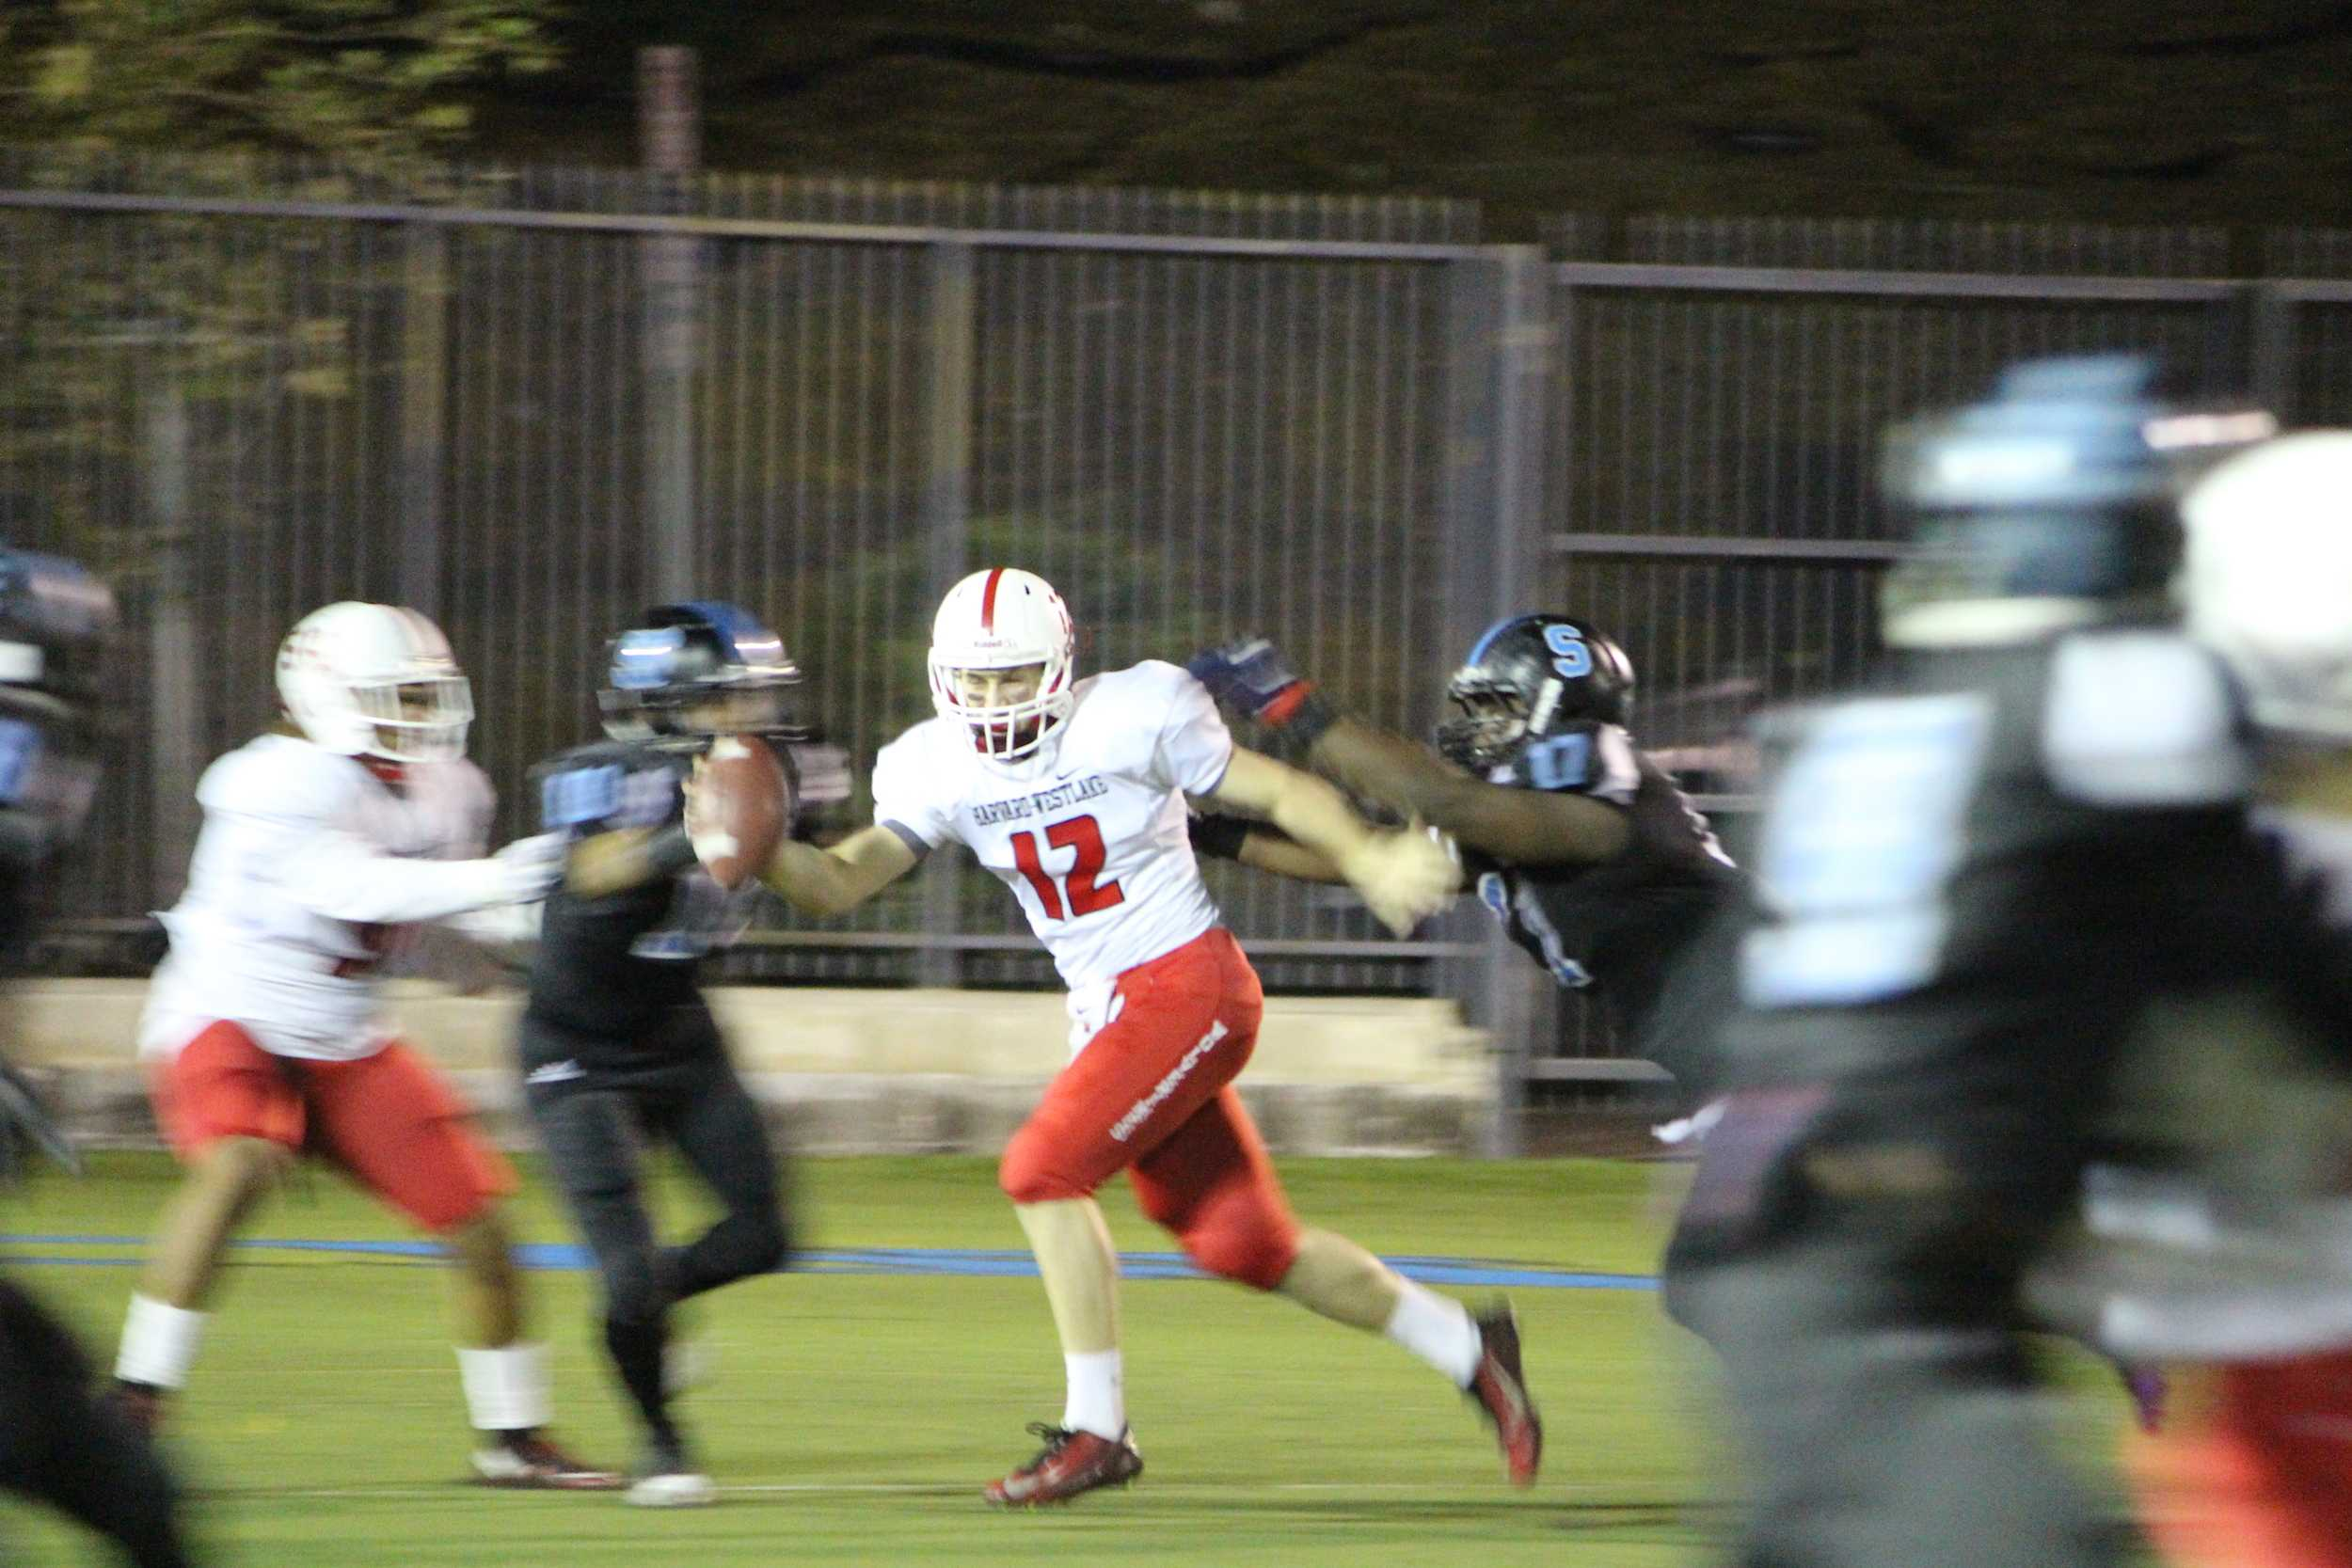 Quarterback Noah Rothman '16 scrambles out of the pocket as he is chased by the Salesian defensive line.